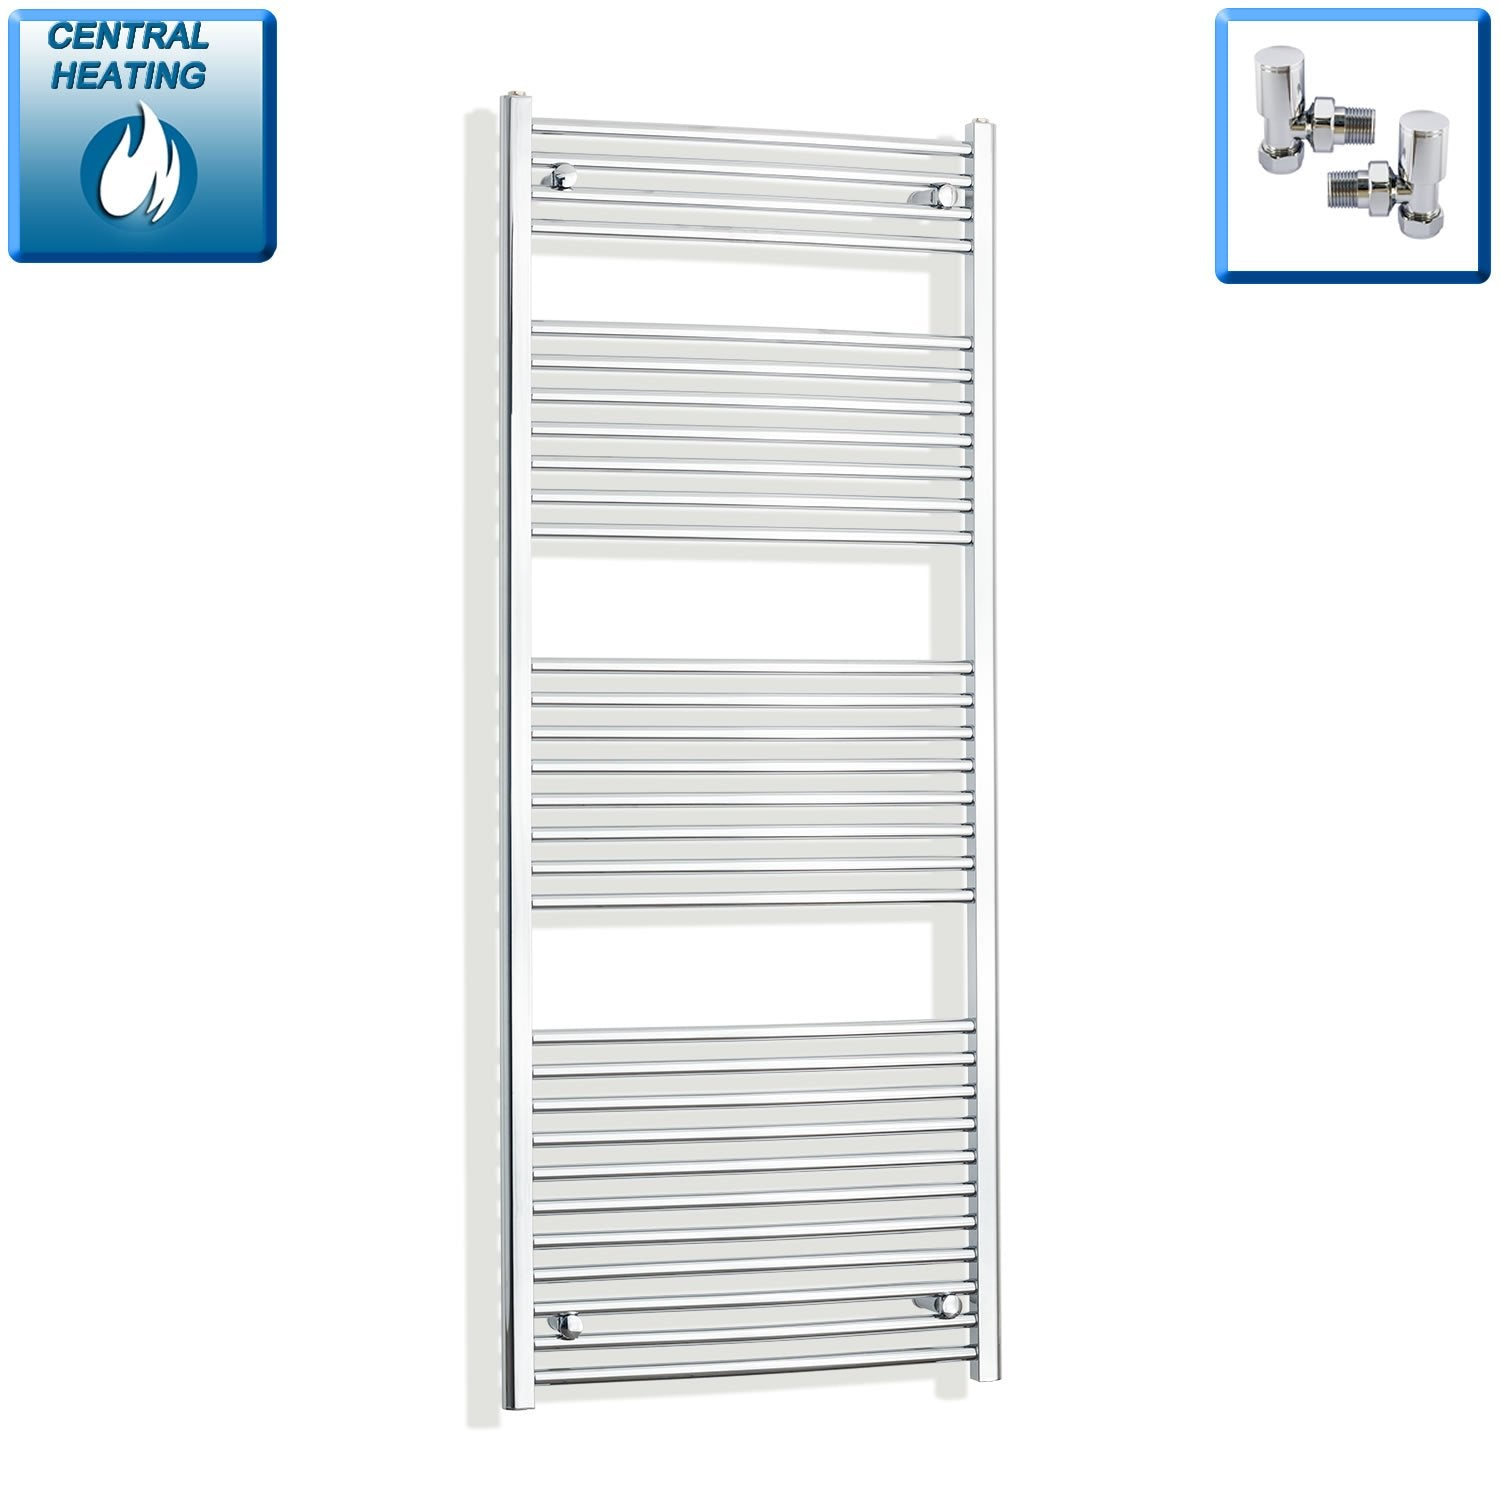 700mm Wide 1700mm High Flat Chrome Heated Towel Rail Radiator HTR,With Angled Valve